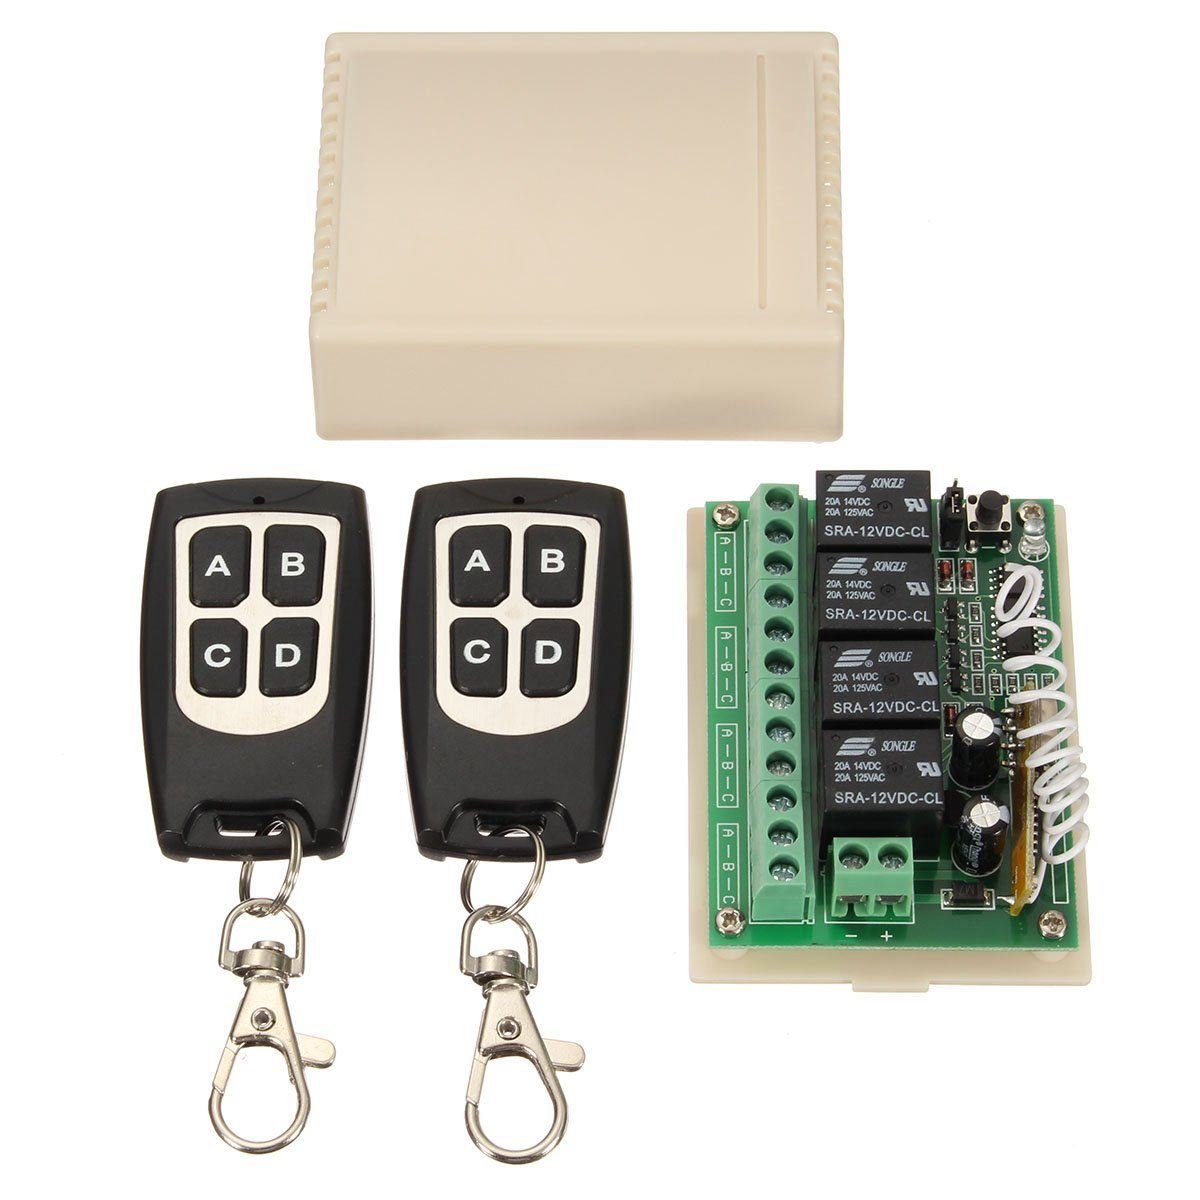 SODIAL 12V 4CH Channel 433Mhz Wireless Remote Control Switch Integrated Circuit With 2 Transmitter DIY Replace Parts Tool Kits